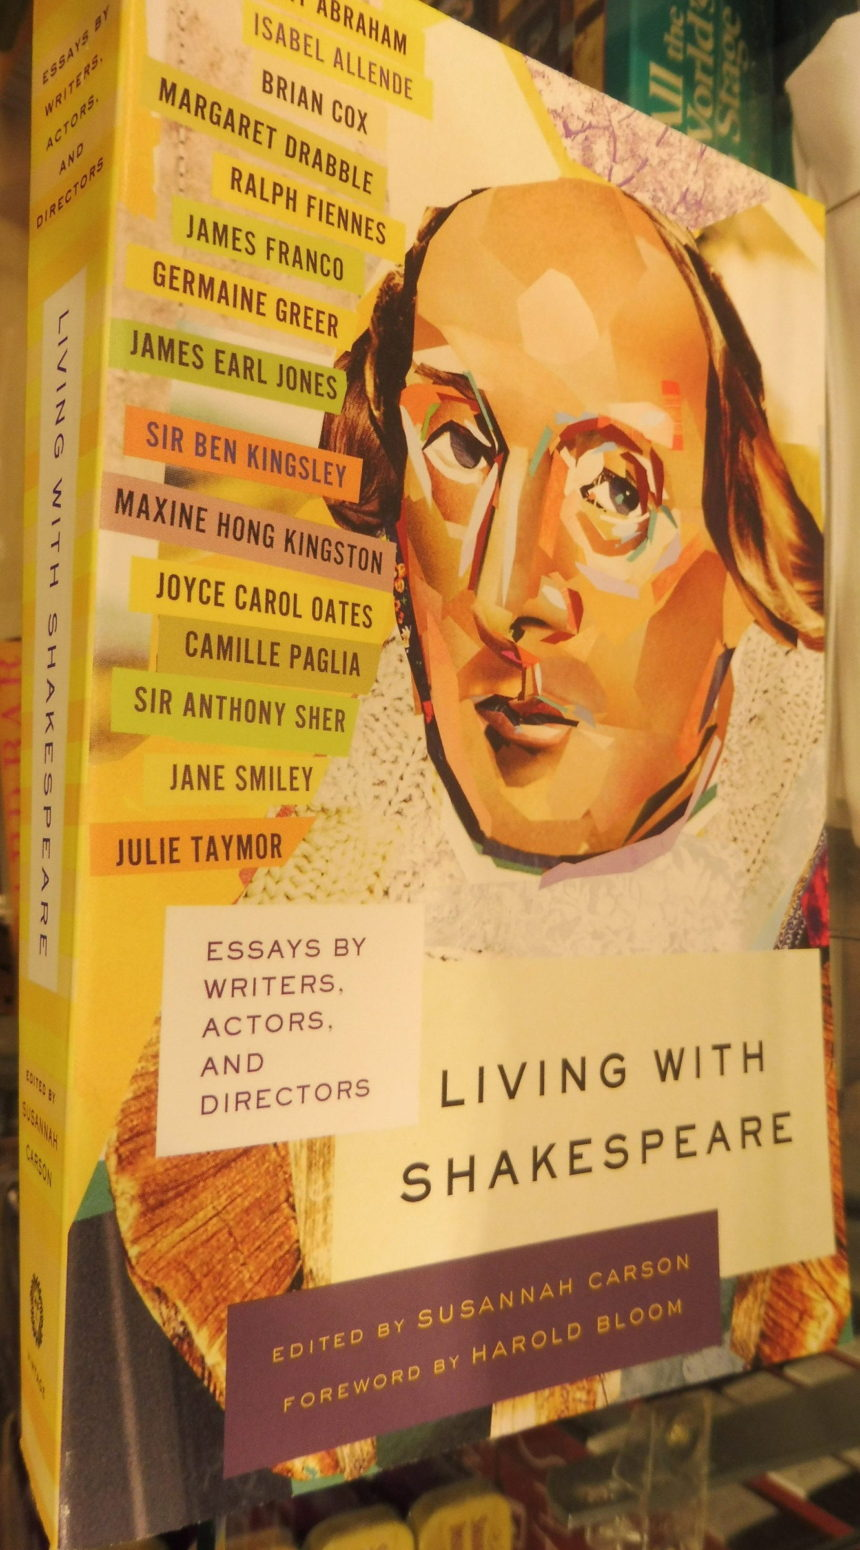 USA DC Kennedy Center gift shops - Shakespeare 17